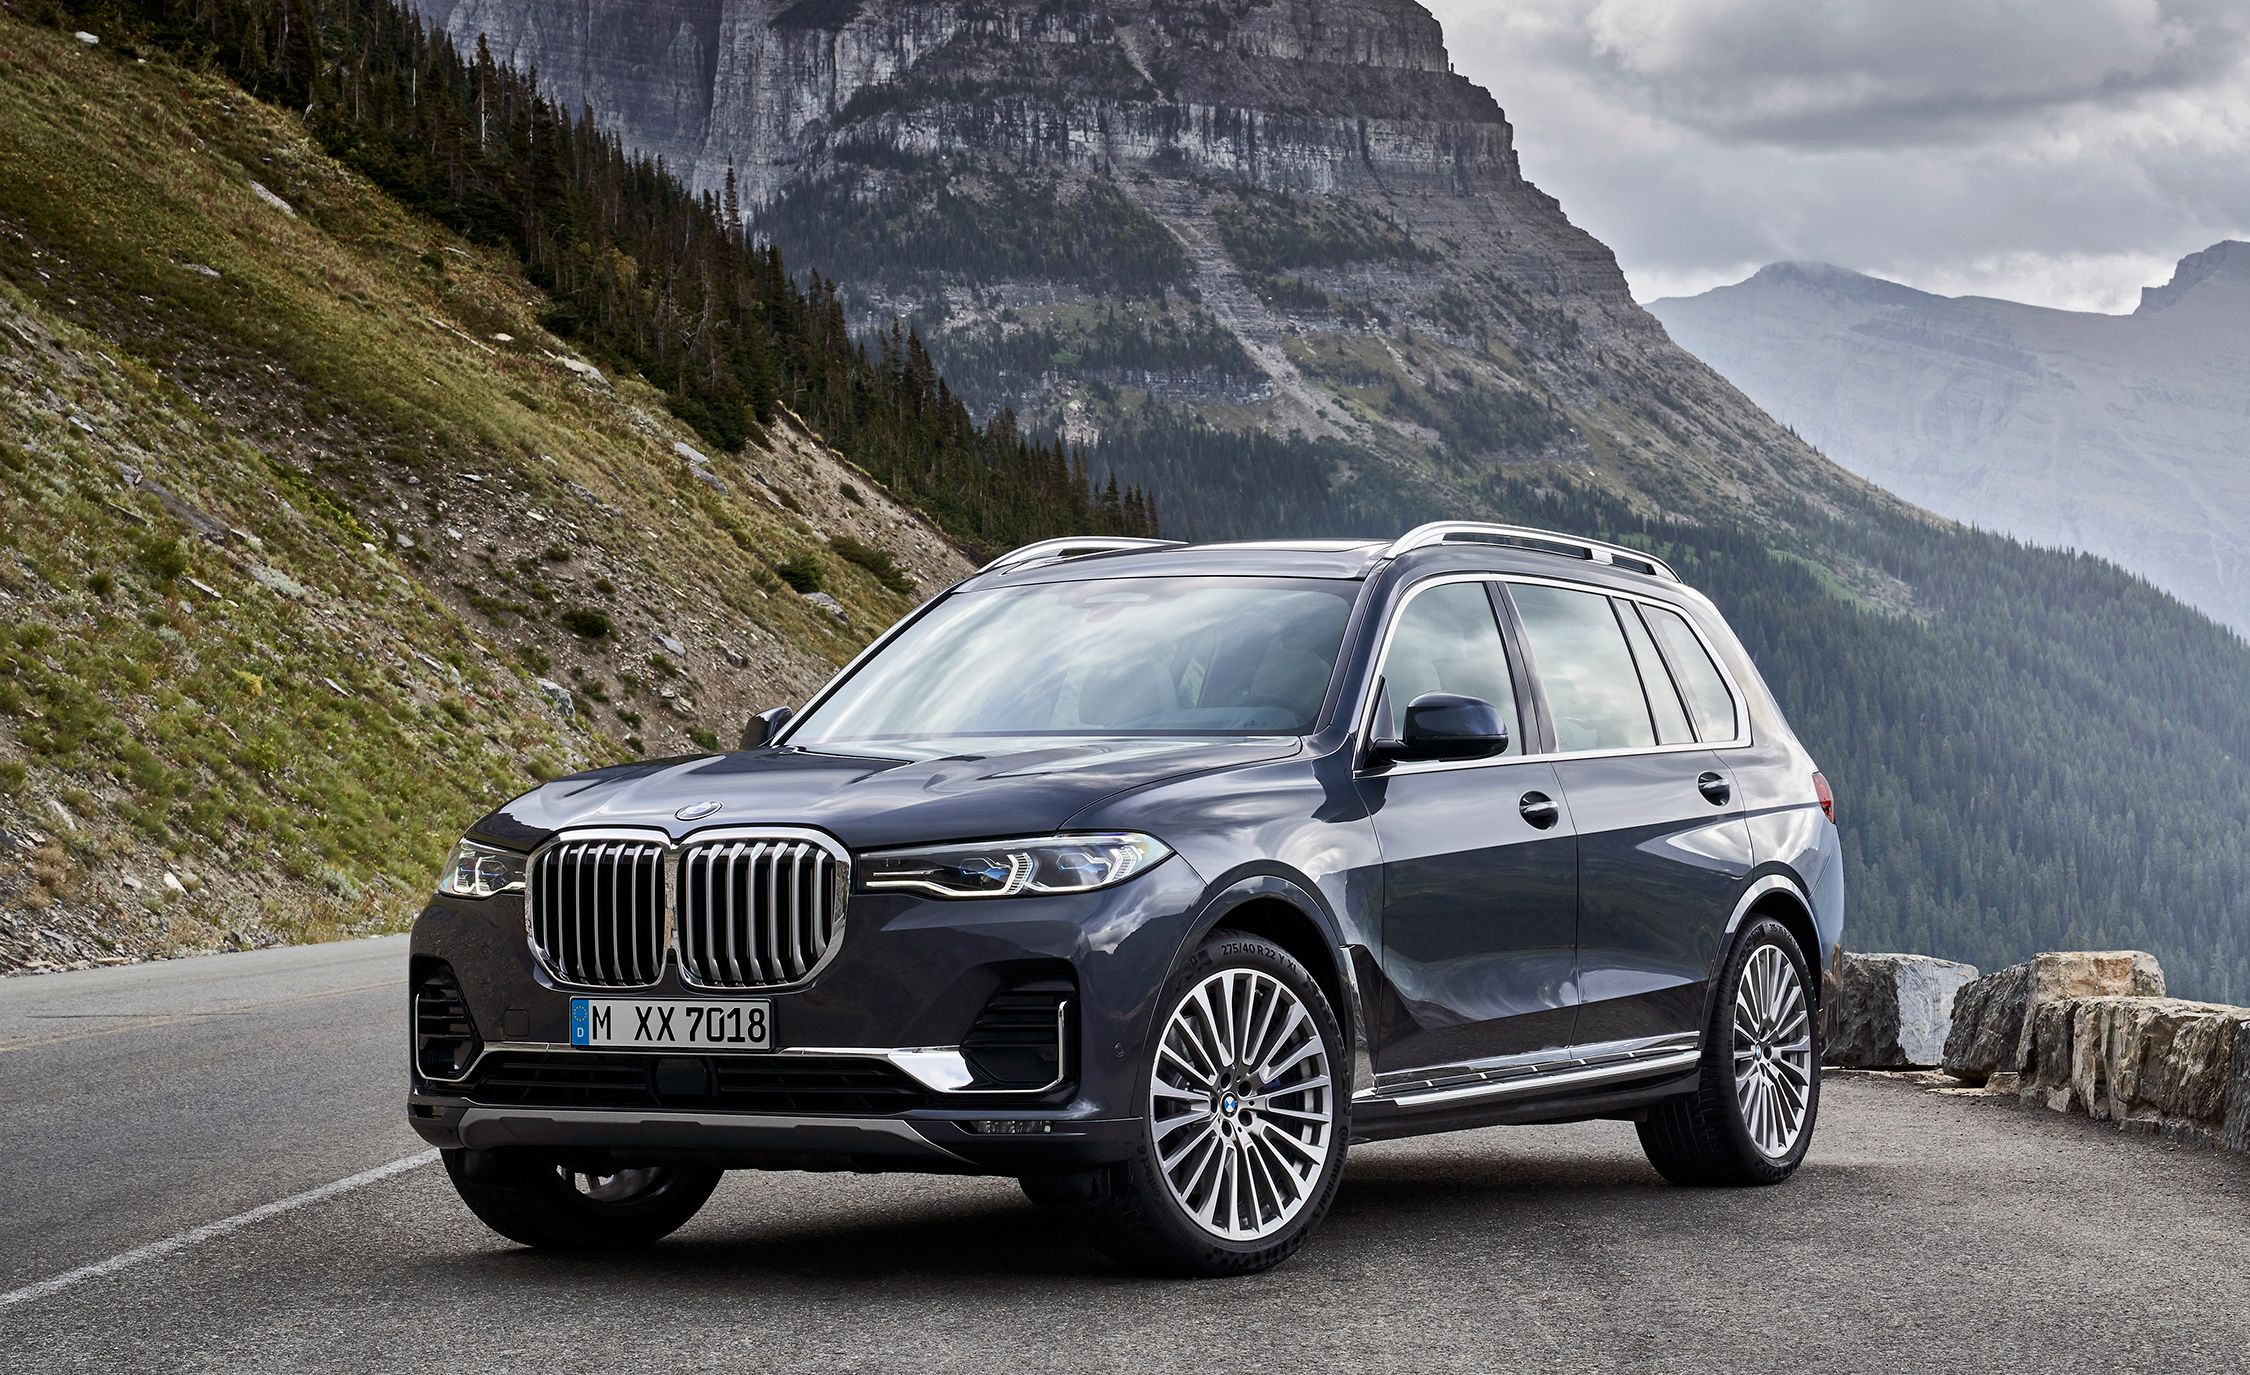 2019 BMW X7 Review, Pricing, and Specs